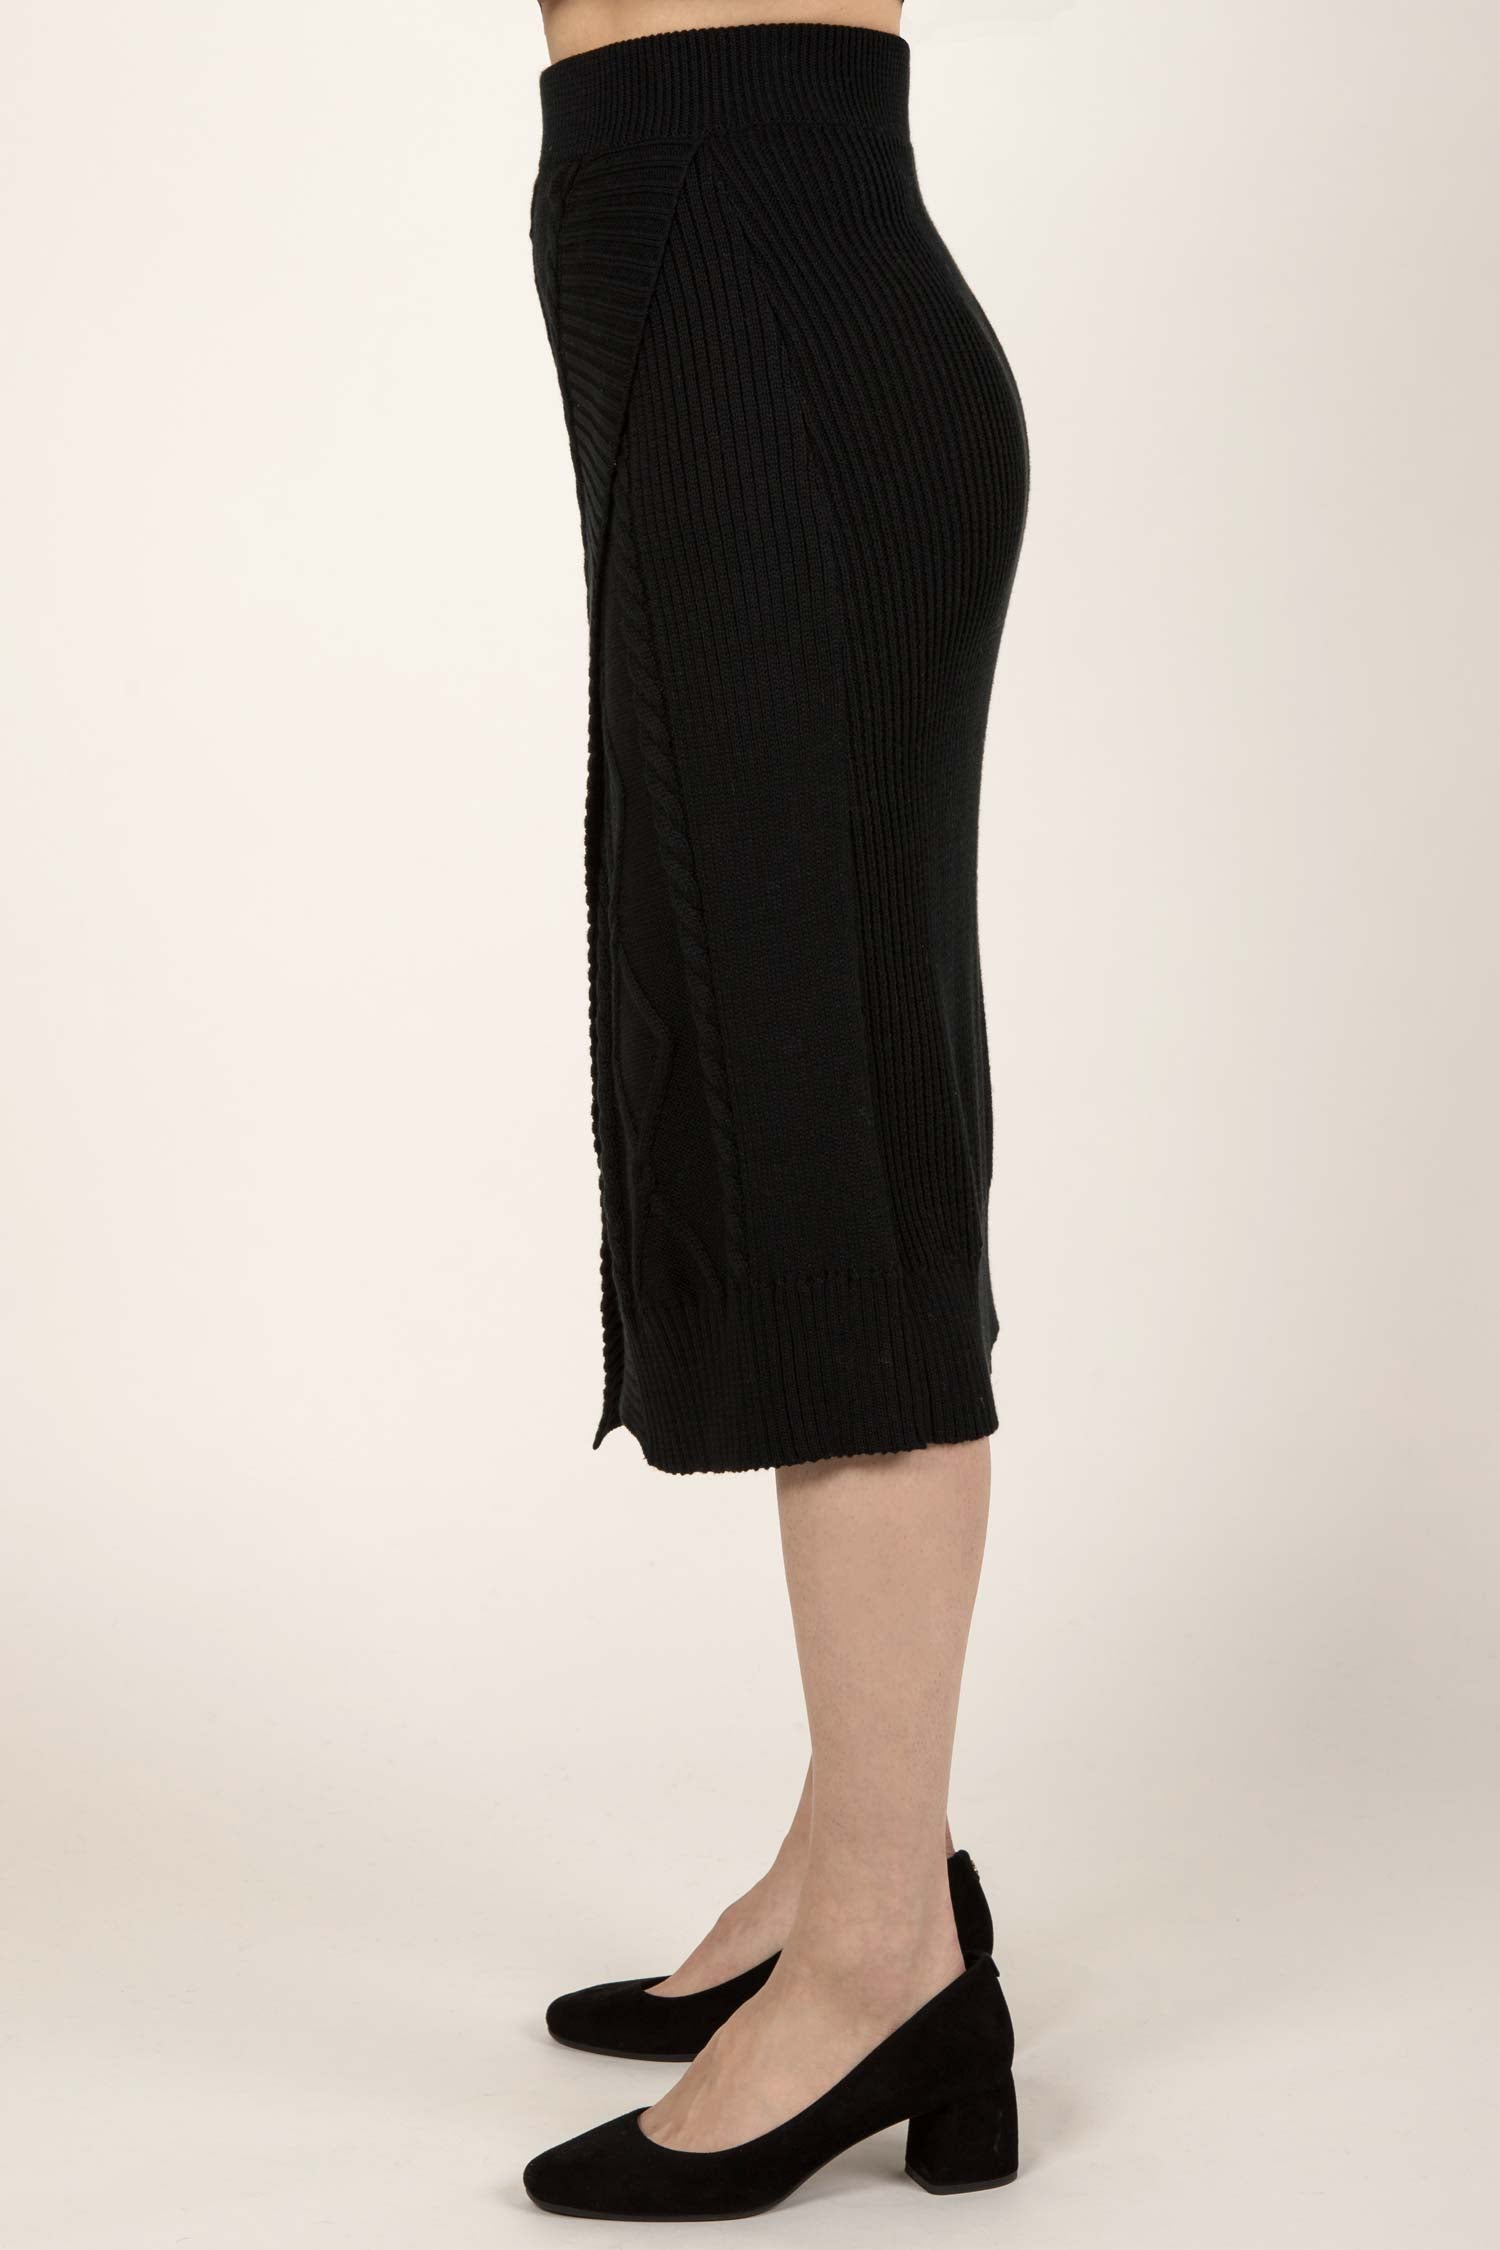 Womens Knit Skirt | Organic Cotton Cable Skirt | Black